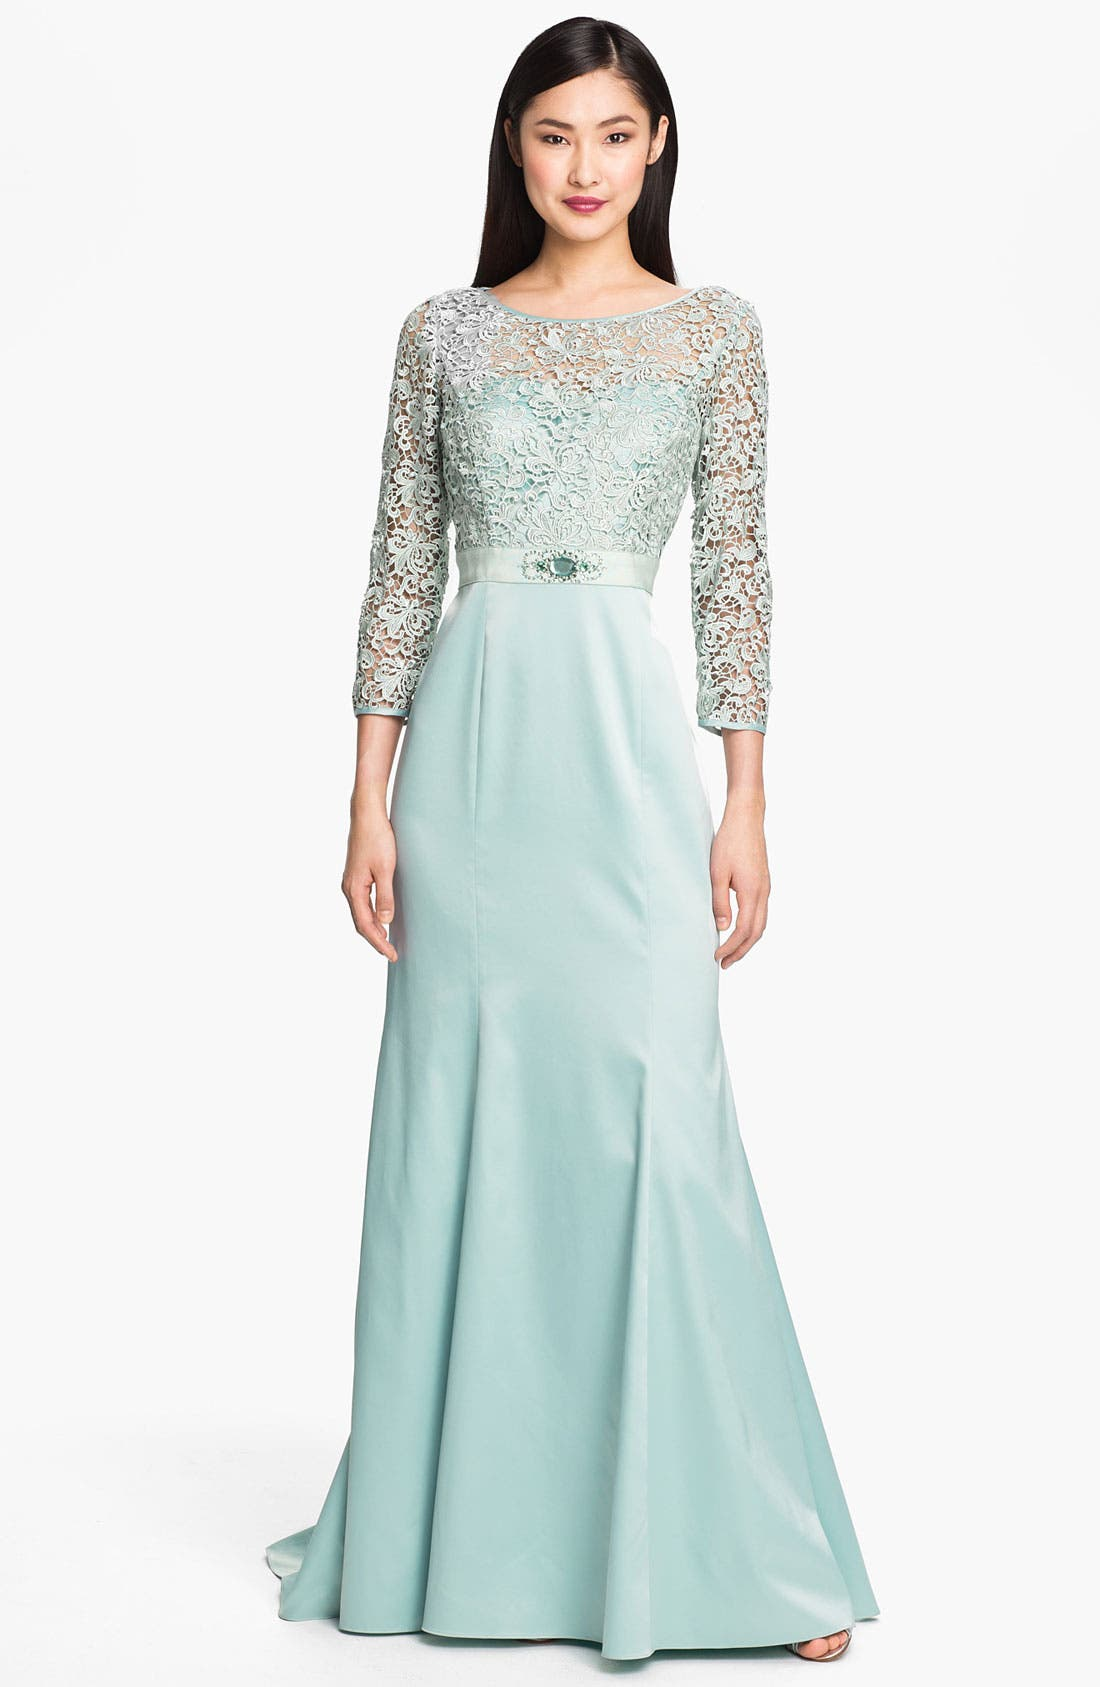 Main Image - Adrianna Papell Embellished Lace & Satin Trumpet Gown